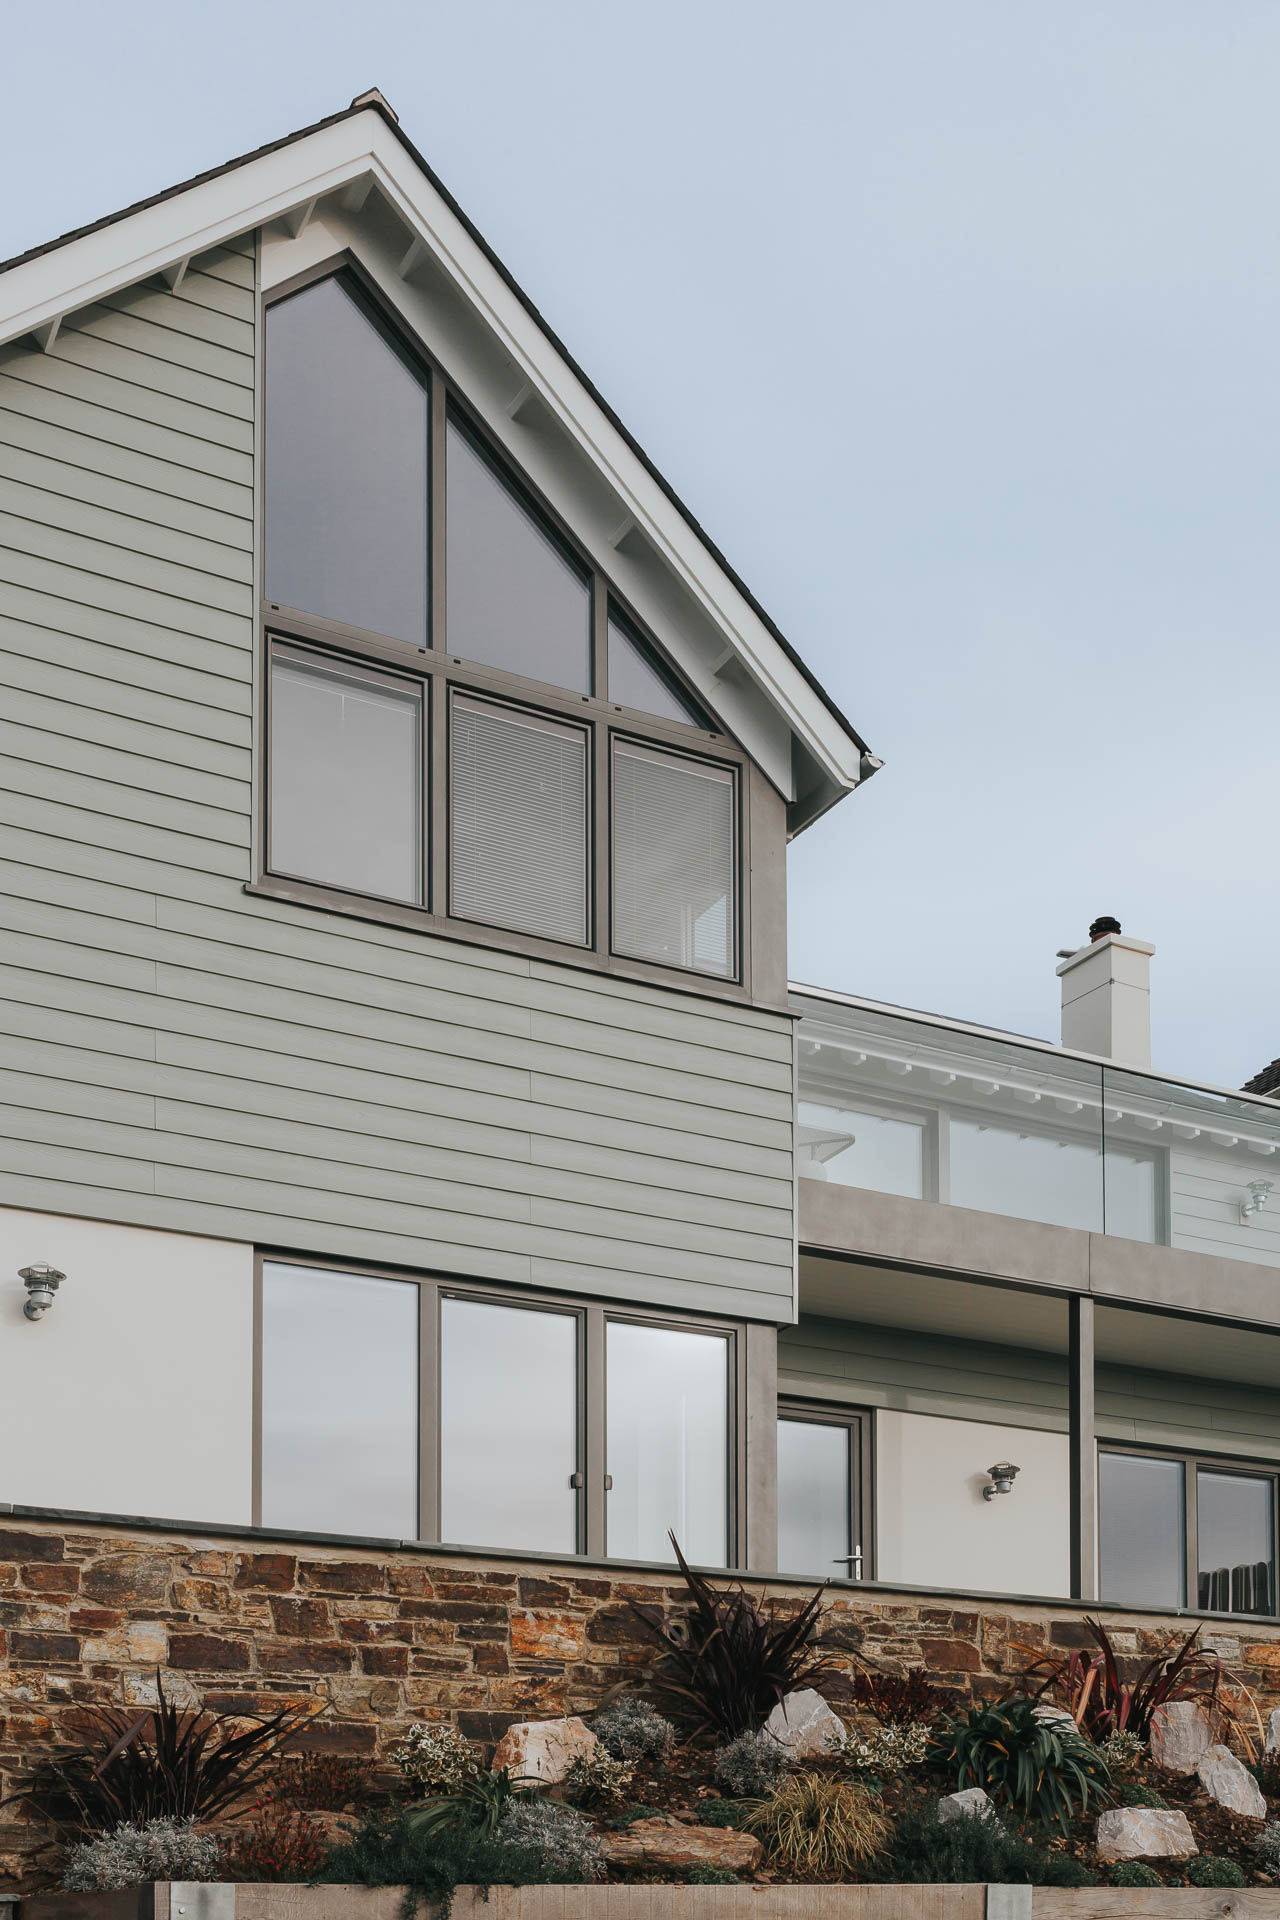 fibre cement cladding boards used on the first floor elevation